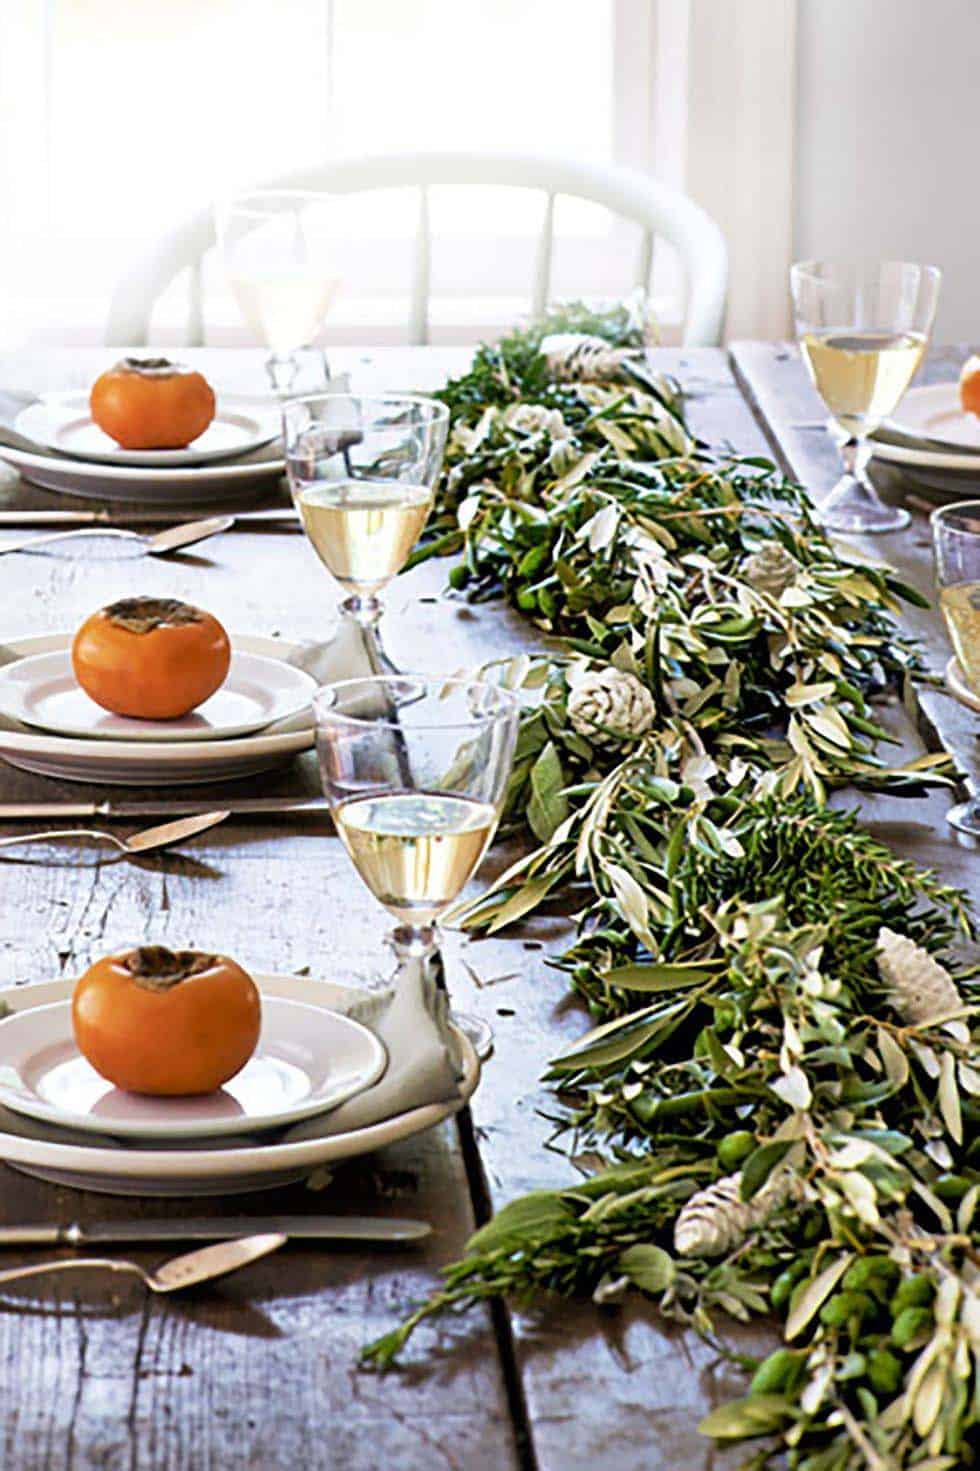 Amazing-Fall-Table-Decor-Ideas-For-Decorating-13-1-Kindesign